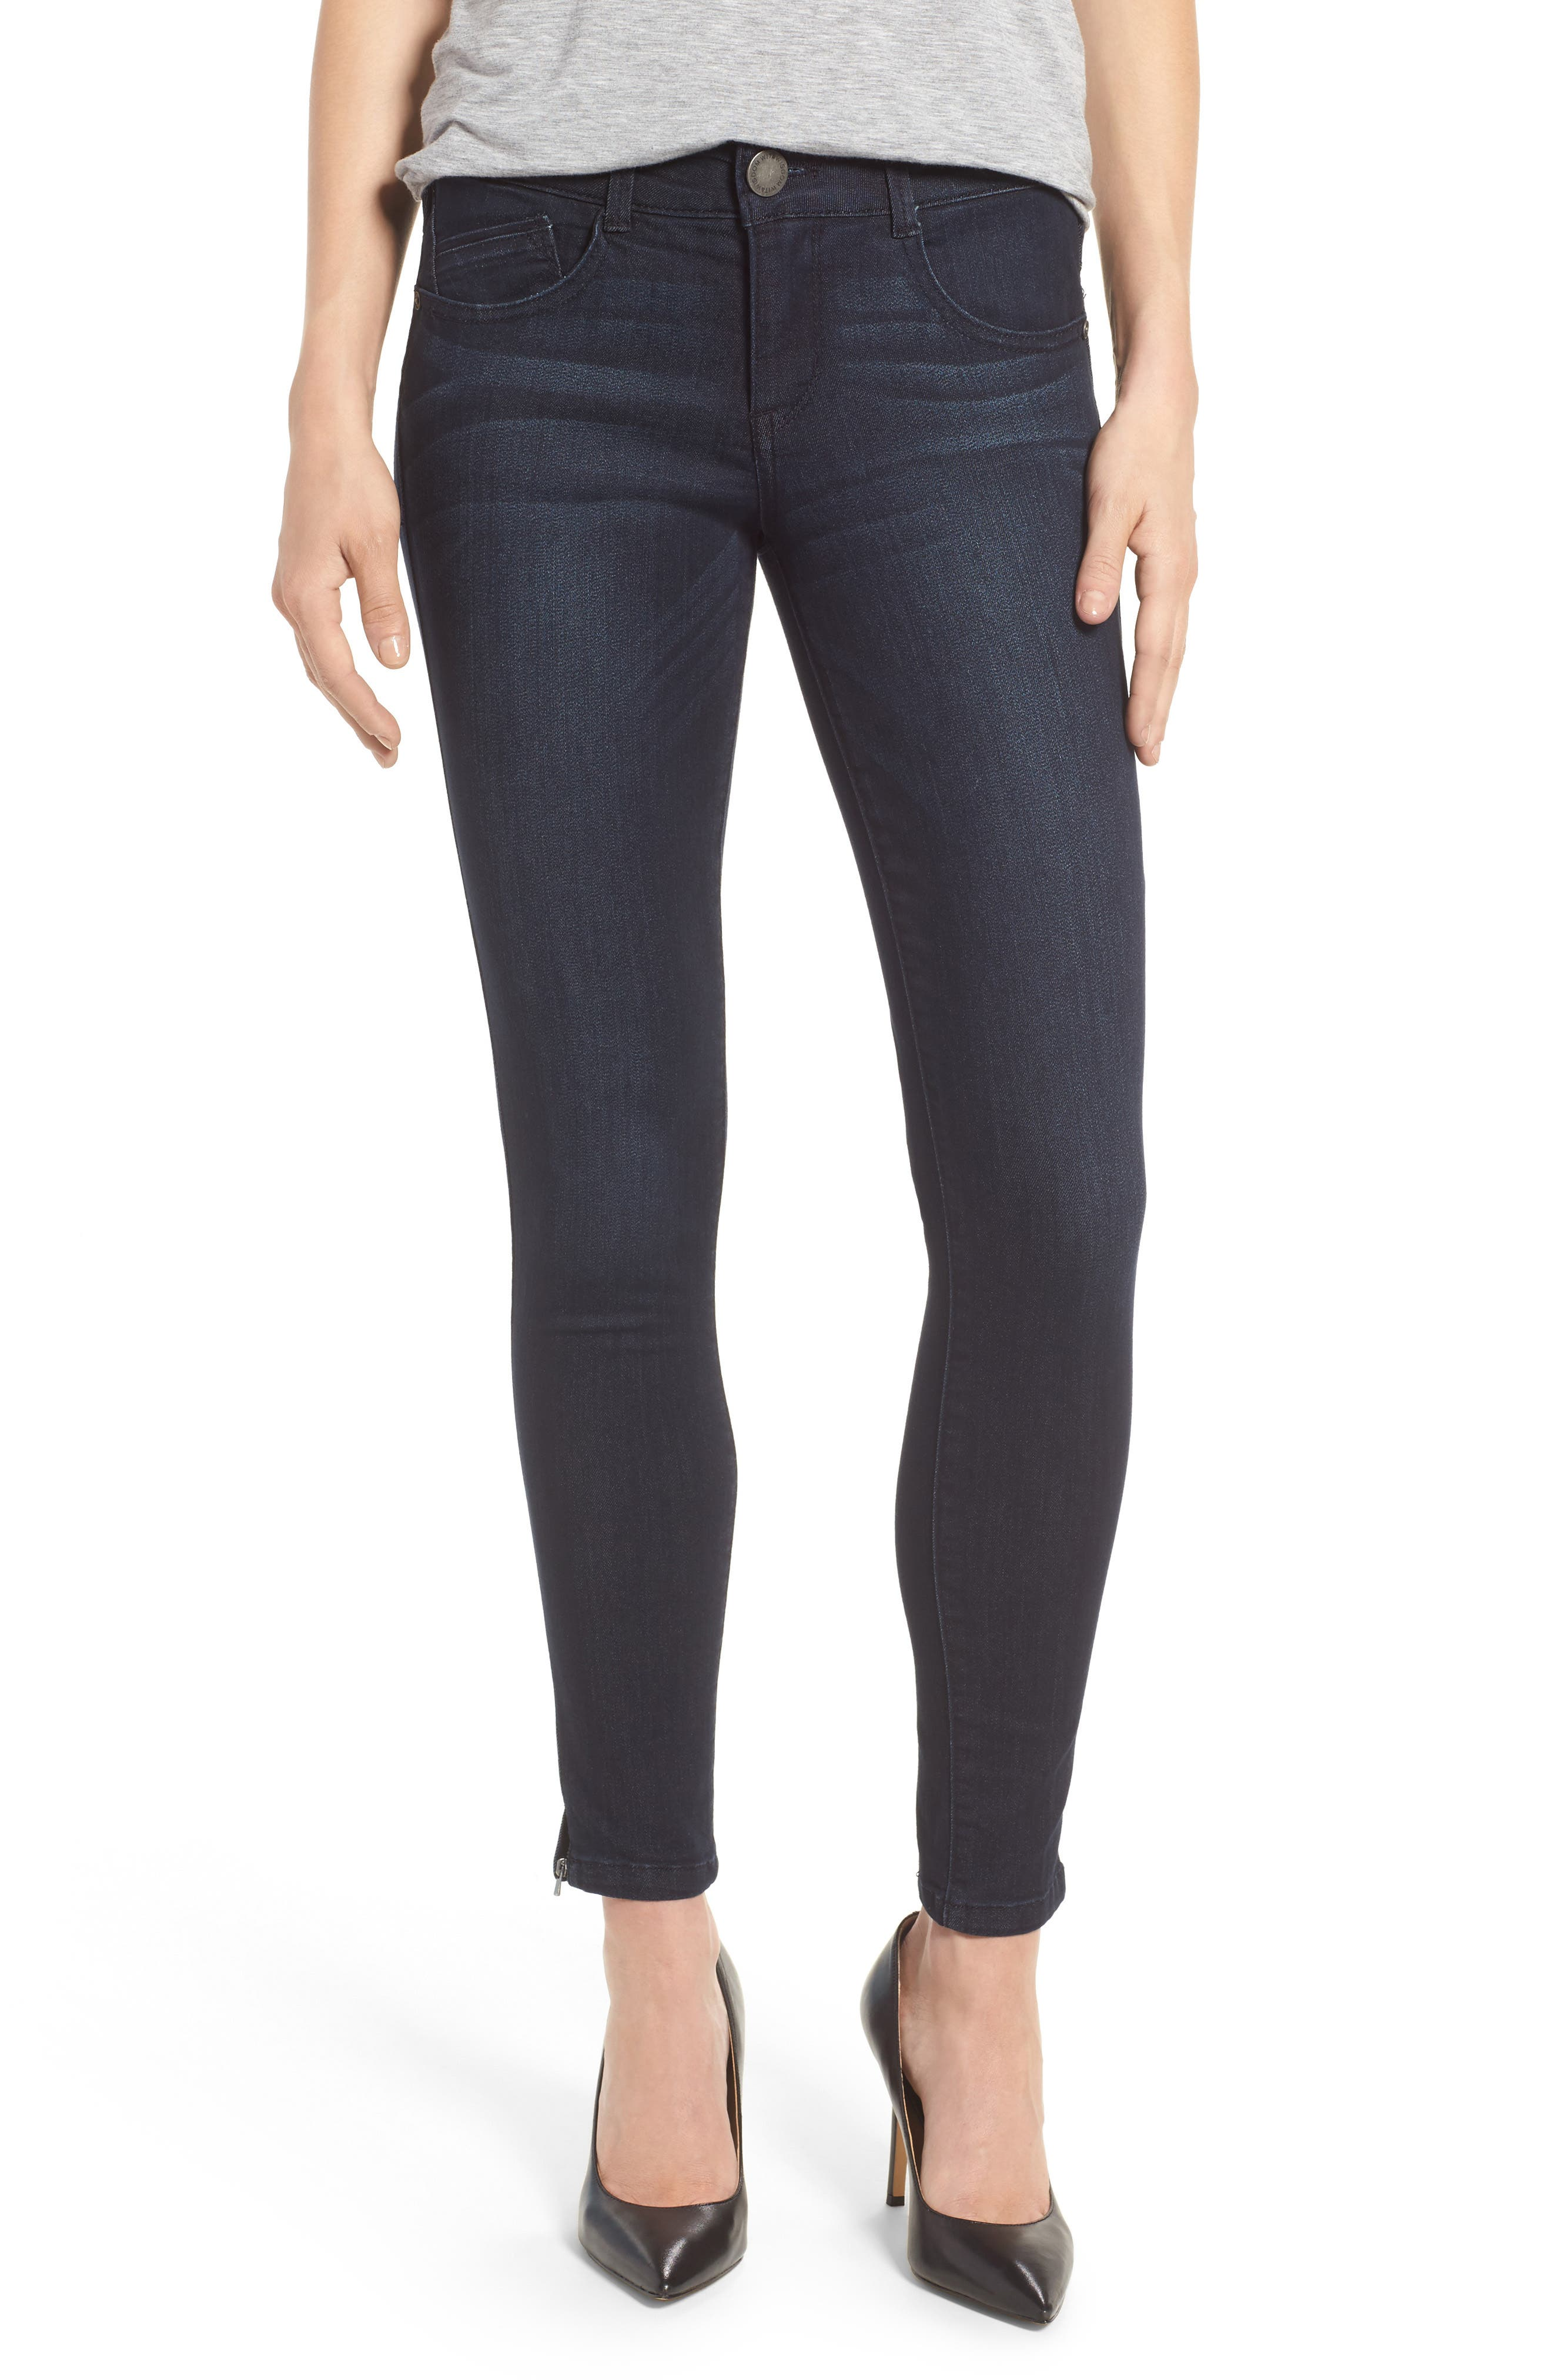 Ab-solution Ankle Zip Skinny Jeans,                             Main thumbnail 1, color,                             Indigo